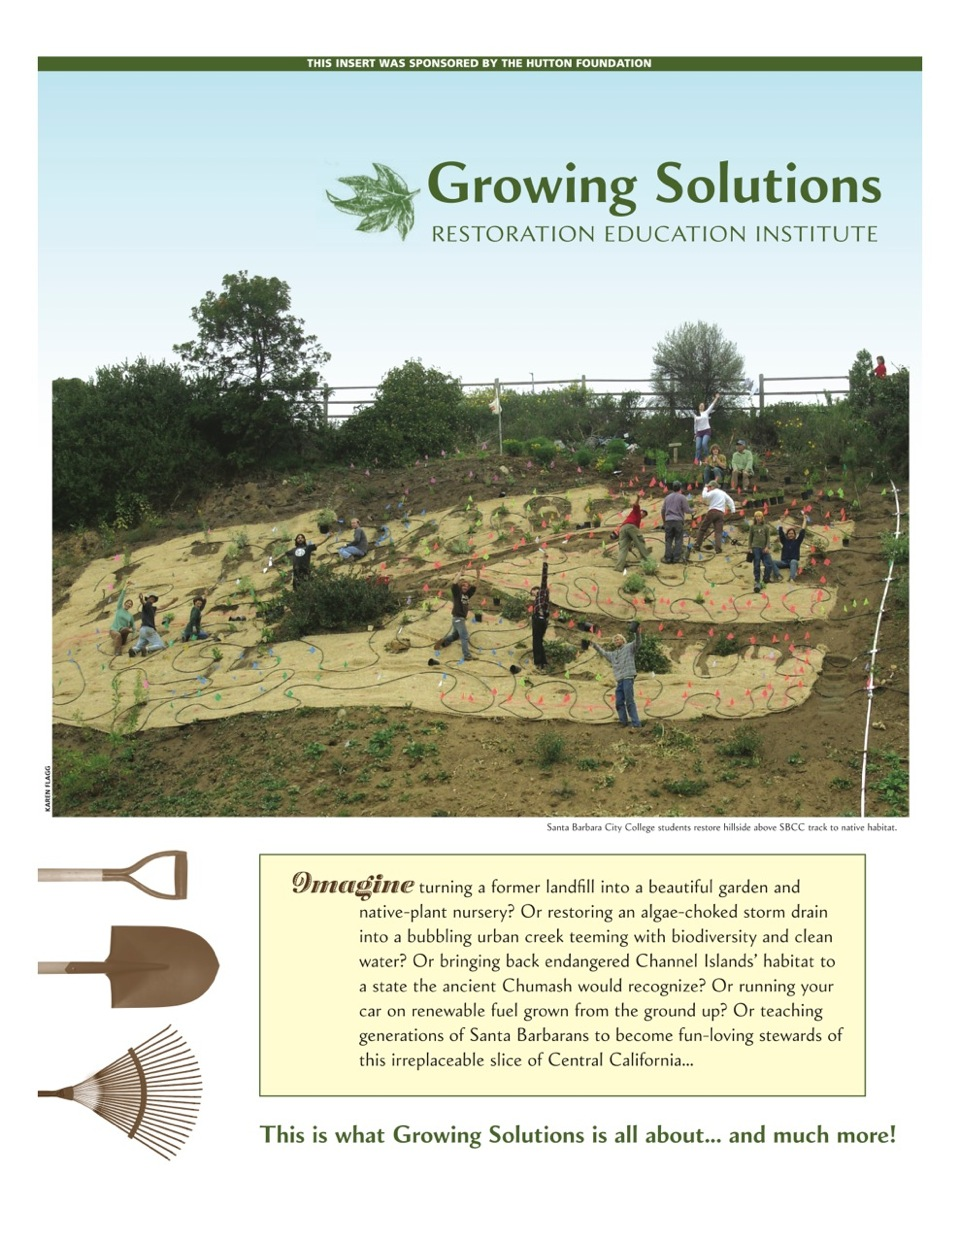 Growing Solutions special insert in The Santa Barbara Independent.